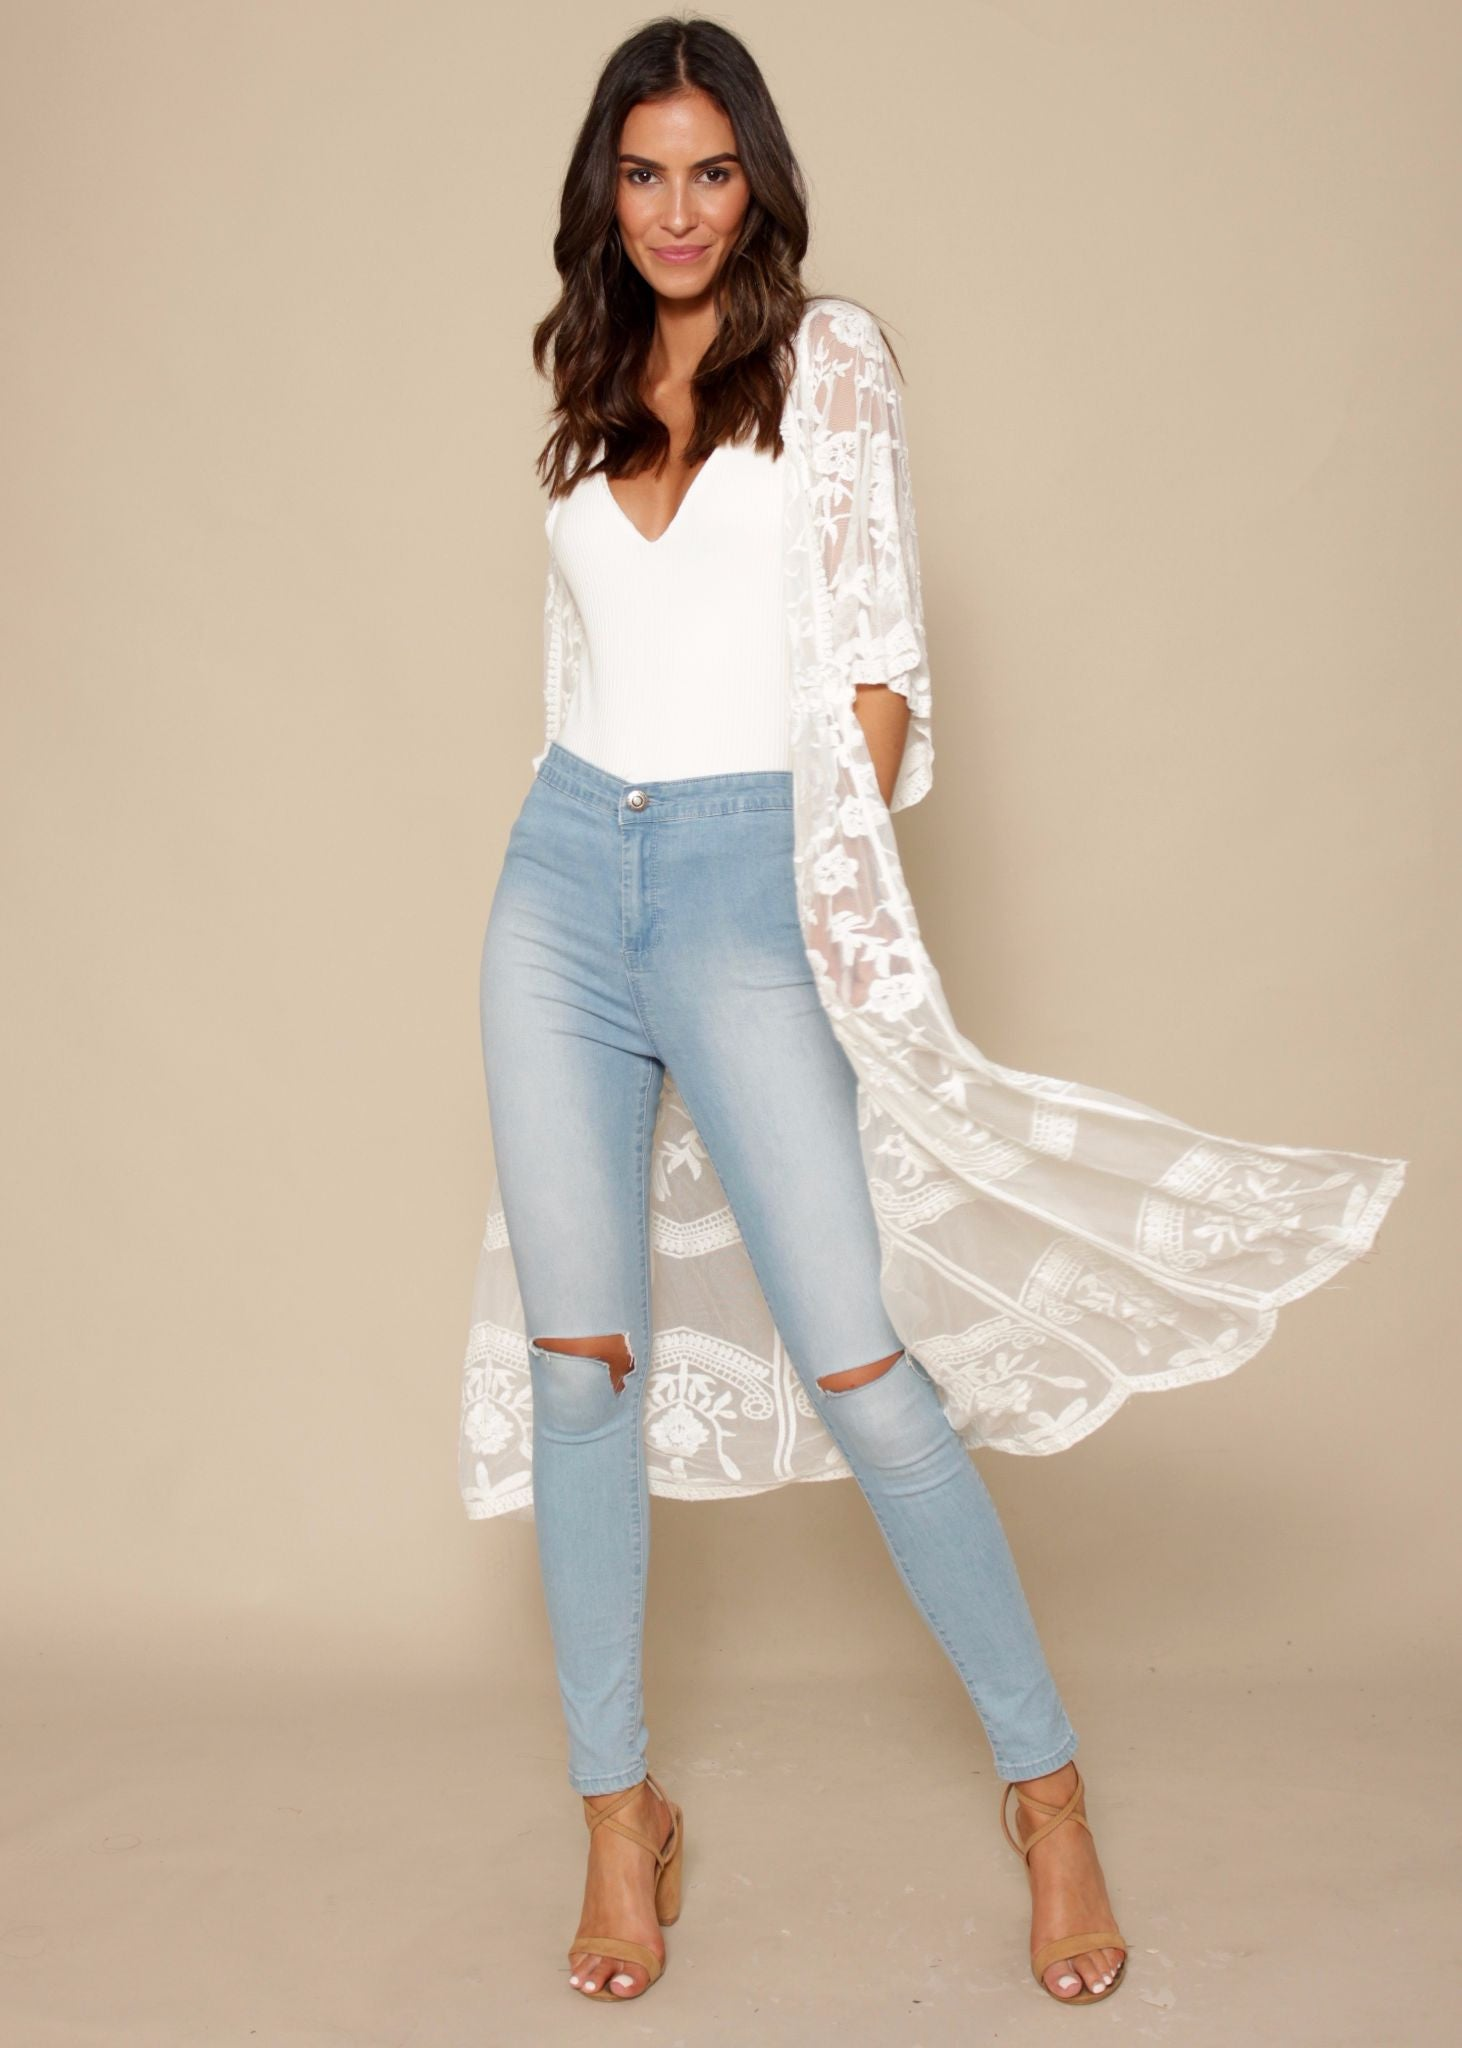 Rambling Rose Lace Cape - White